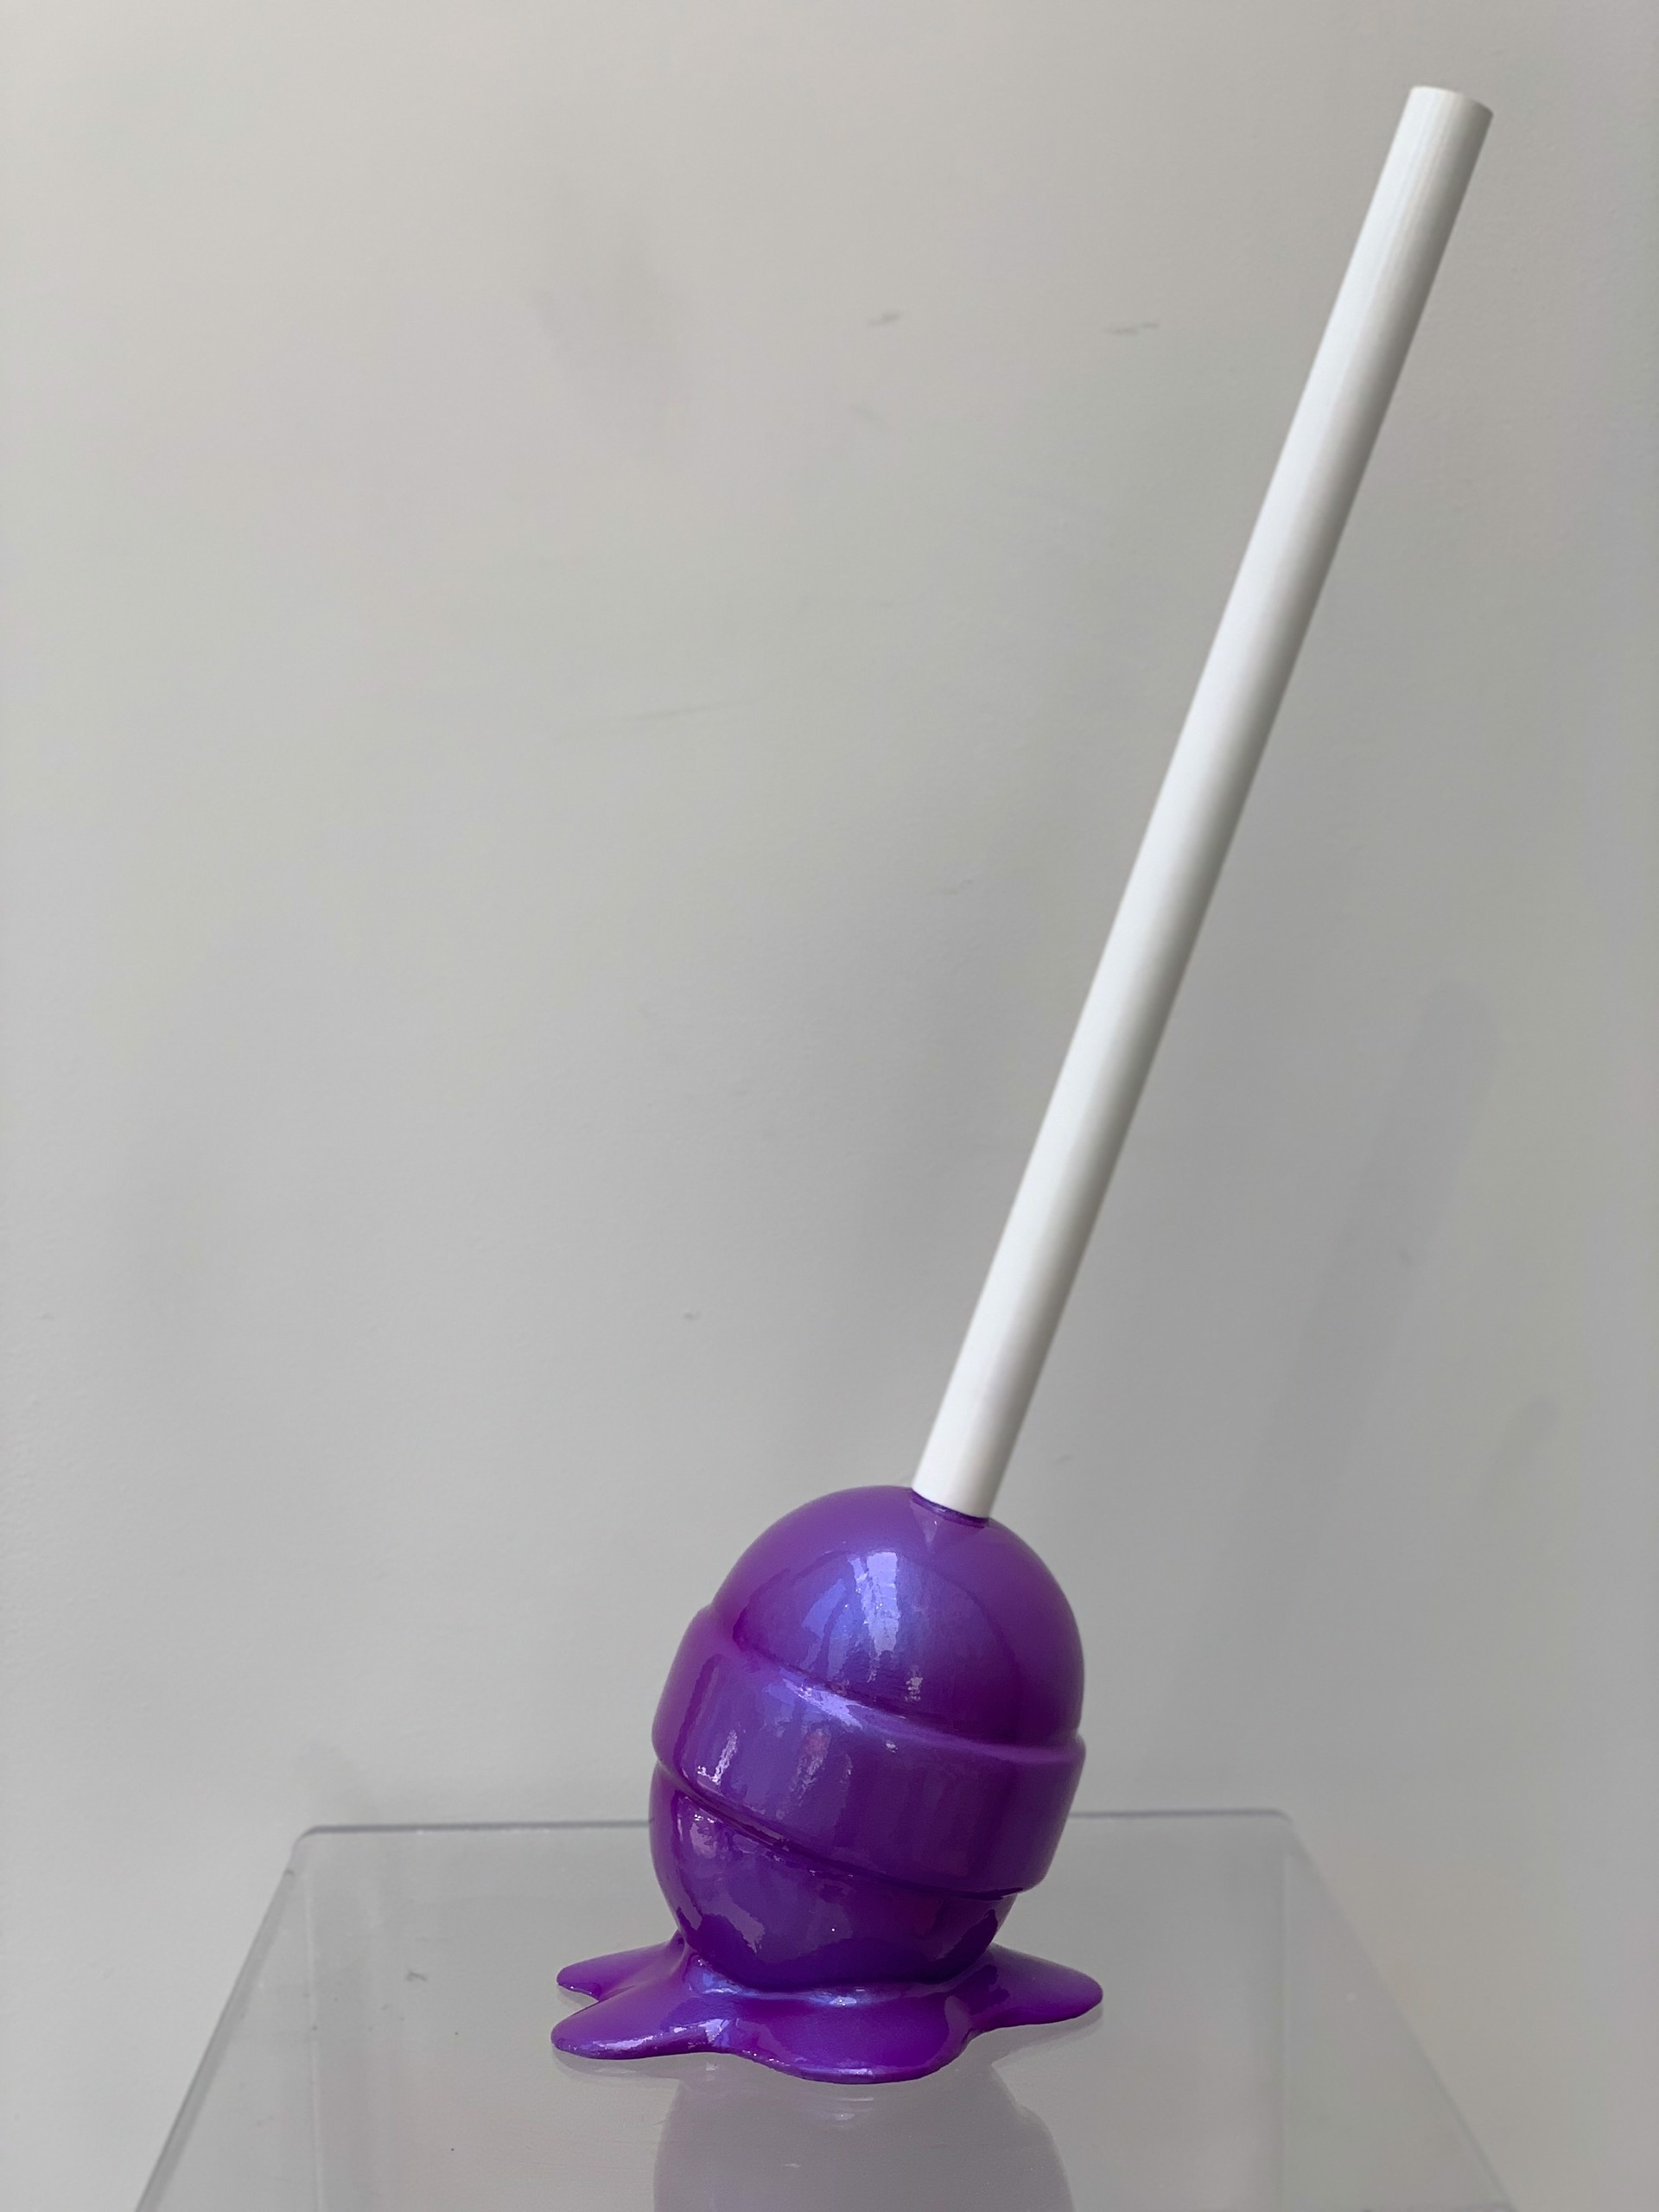 The sweet life Small Purple Lollipop by Elena Bulatova